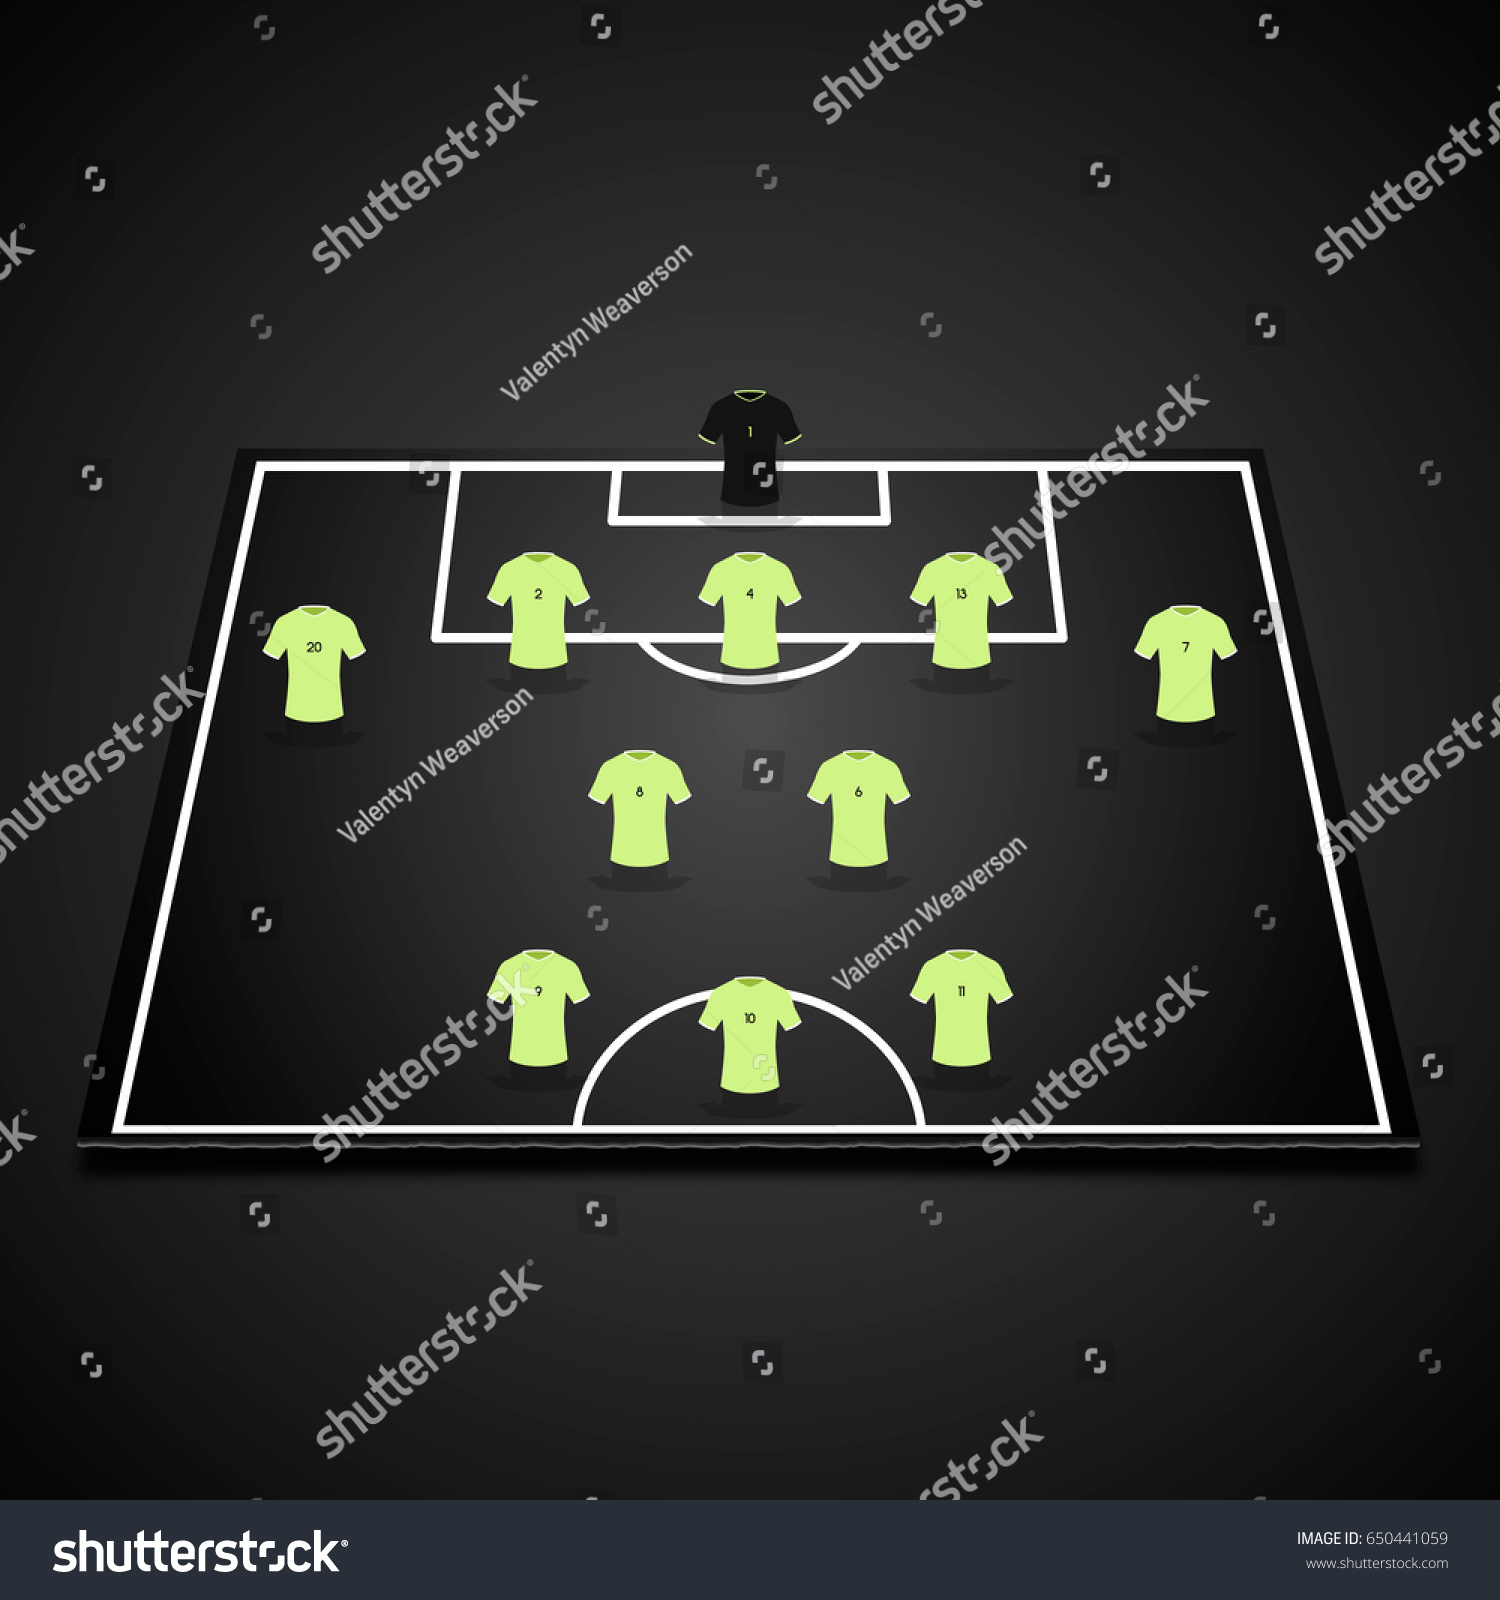 Football soccer 3d starting lineup on stock vector 650441059 football soccer 3d starting line up on one half of field 5 pronofoot35fo Gallery